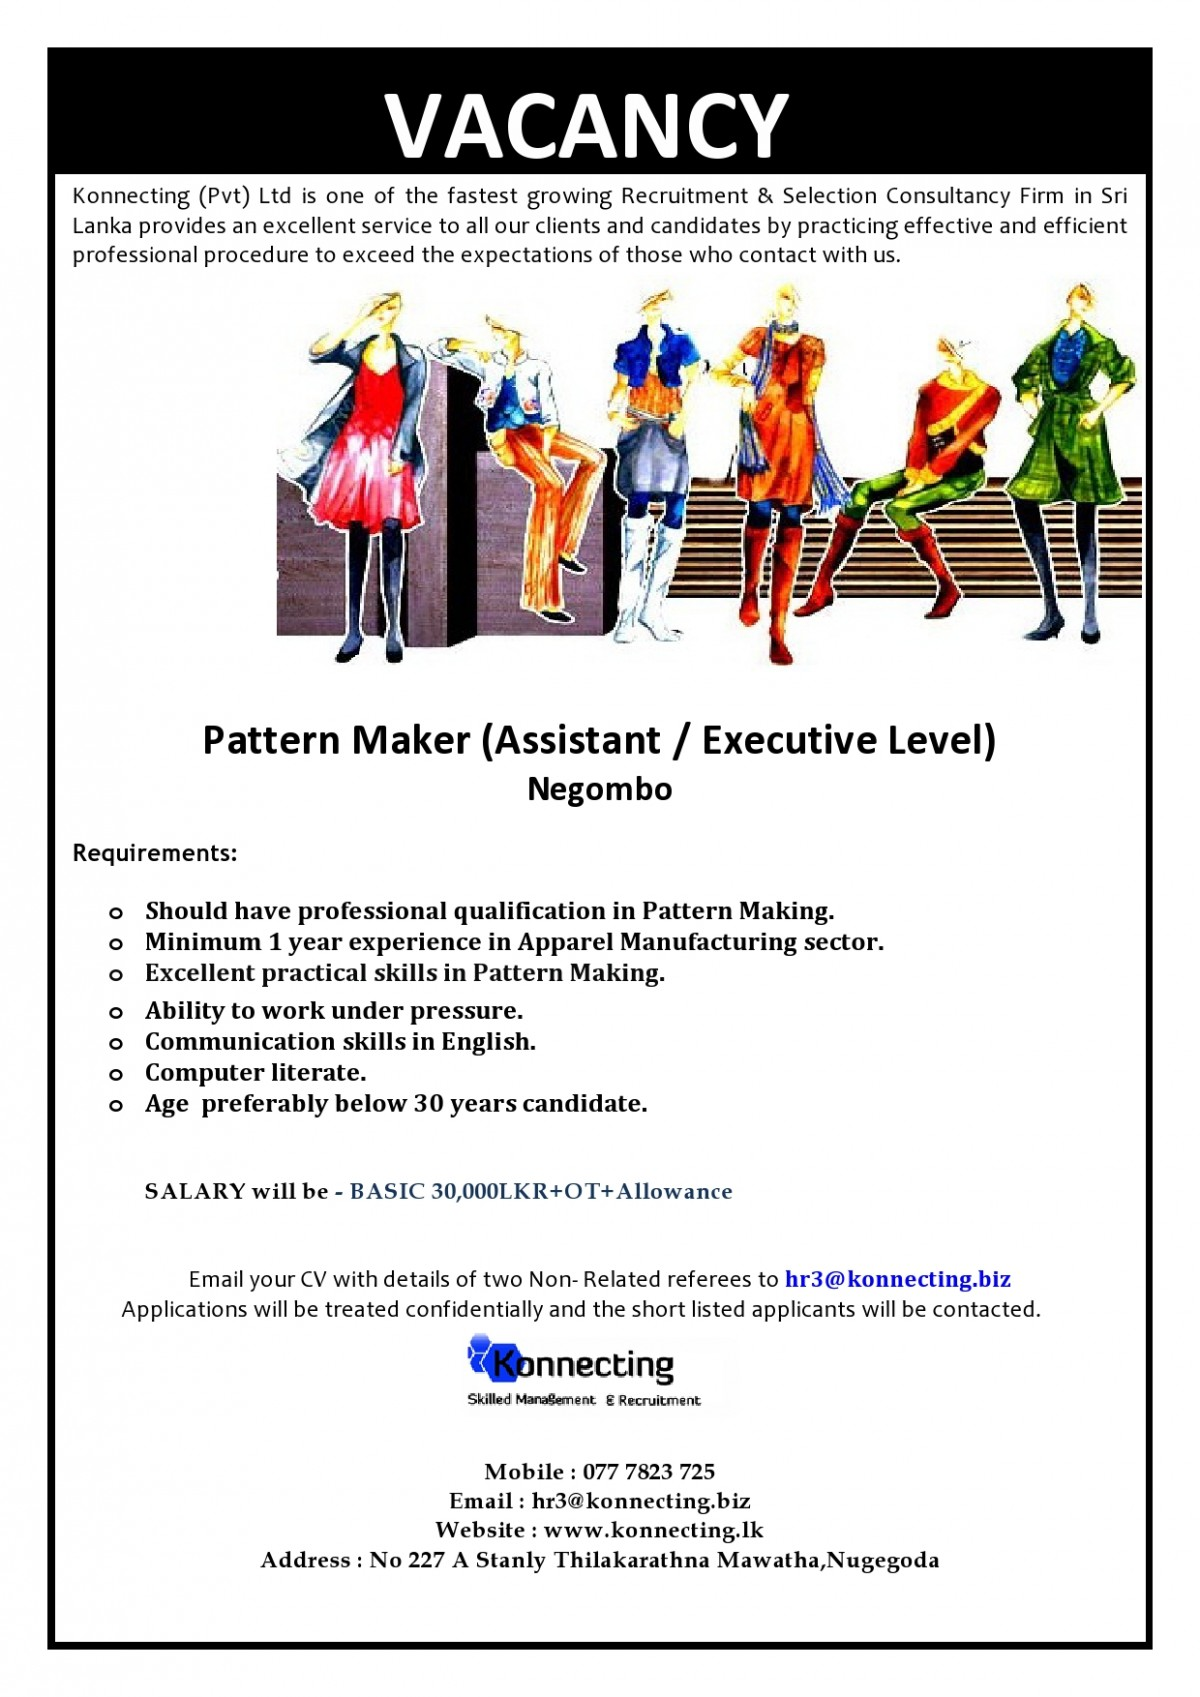 pattern maker assistant executive level apperal job vacancy in minimum 1 year experience in apparel manufacturing sector excellent practical skills in pattern making ability to work under pressure